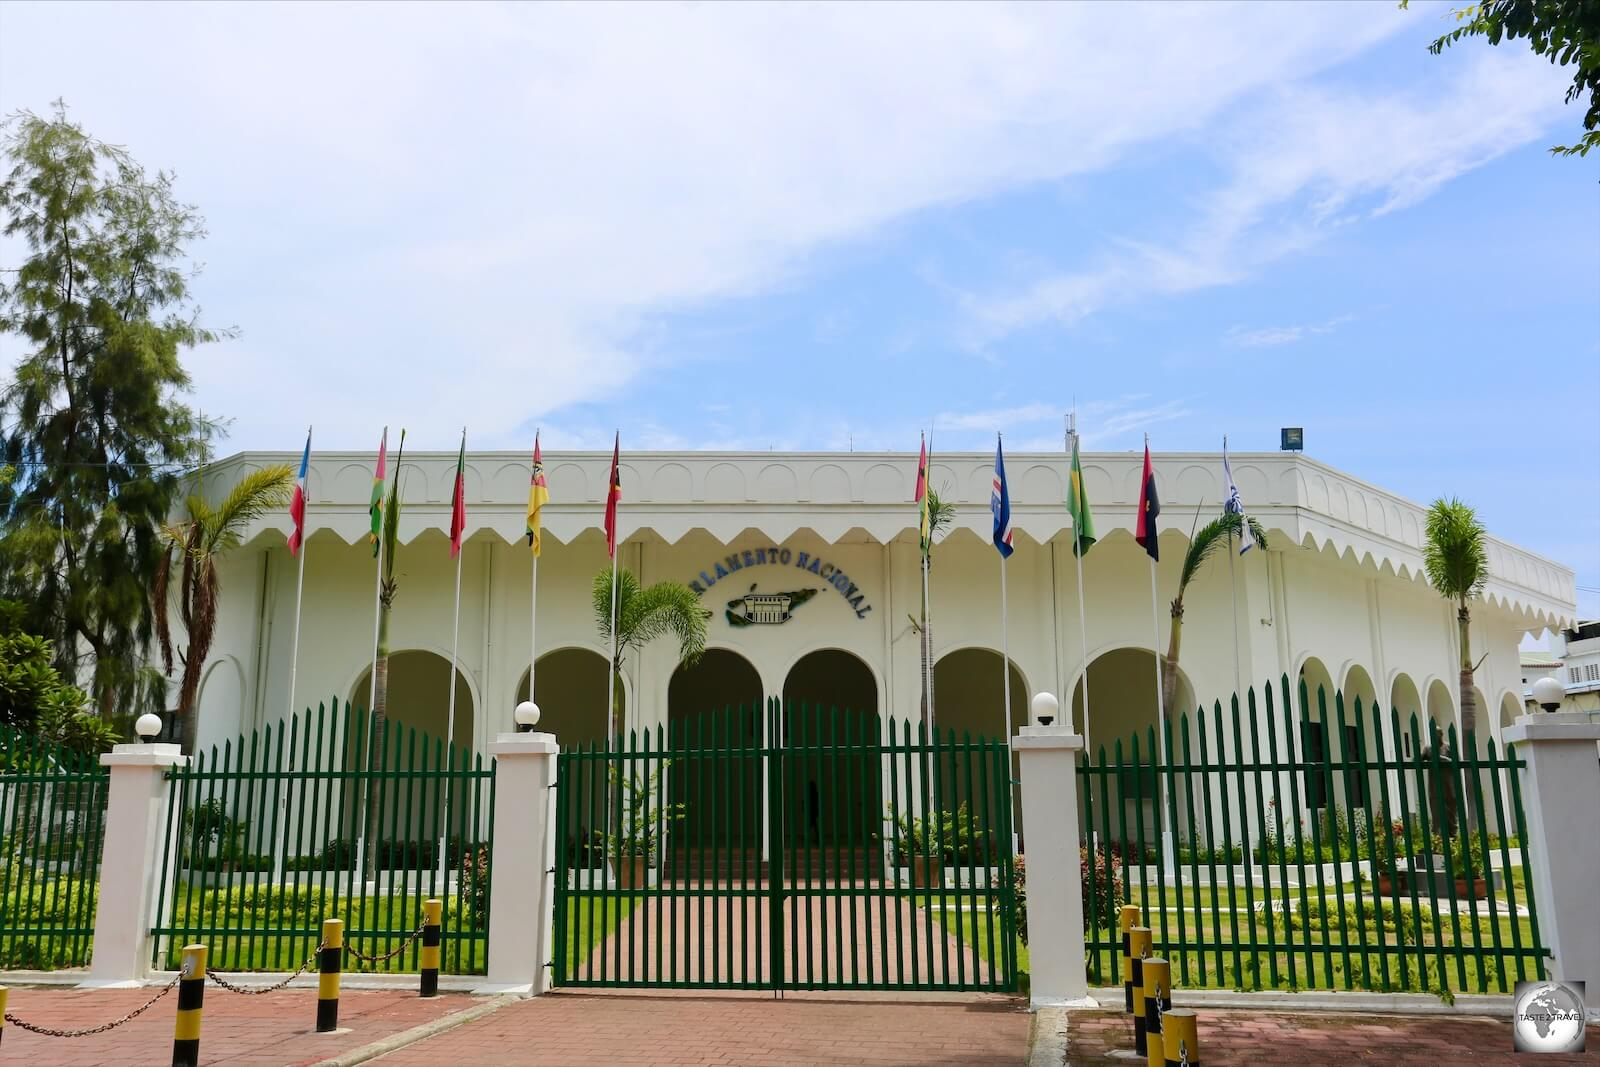 The National Parliament building in Dili. Photography is only allowed from the street.